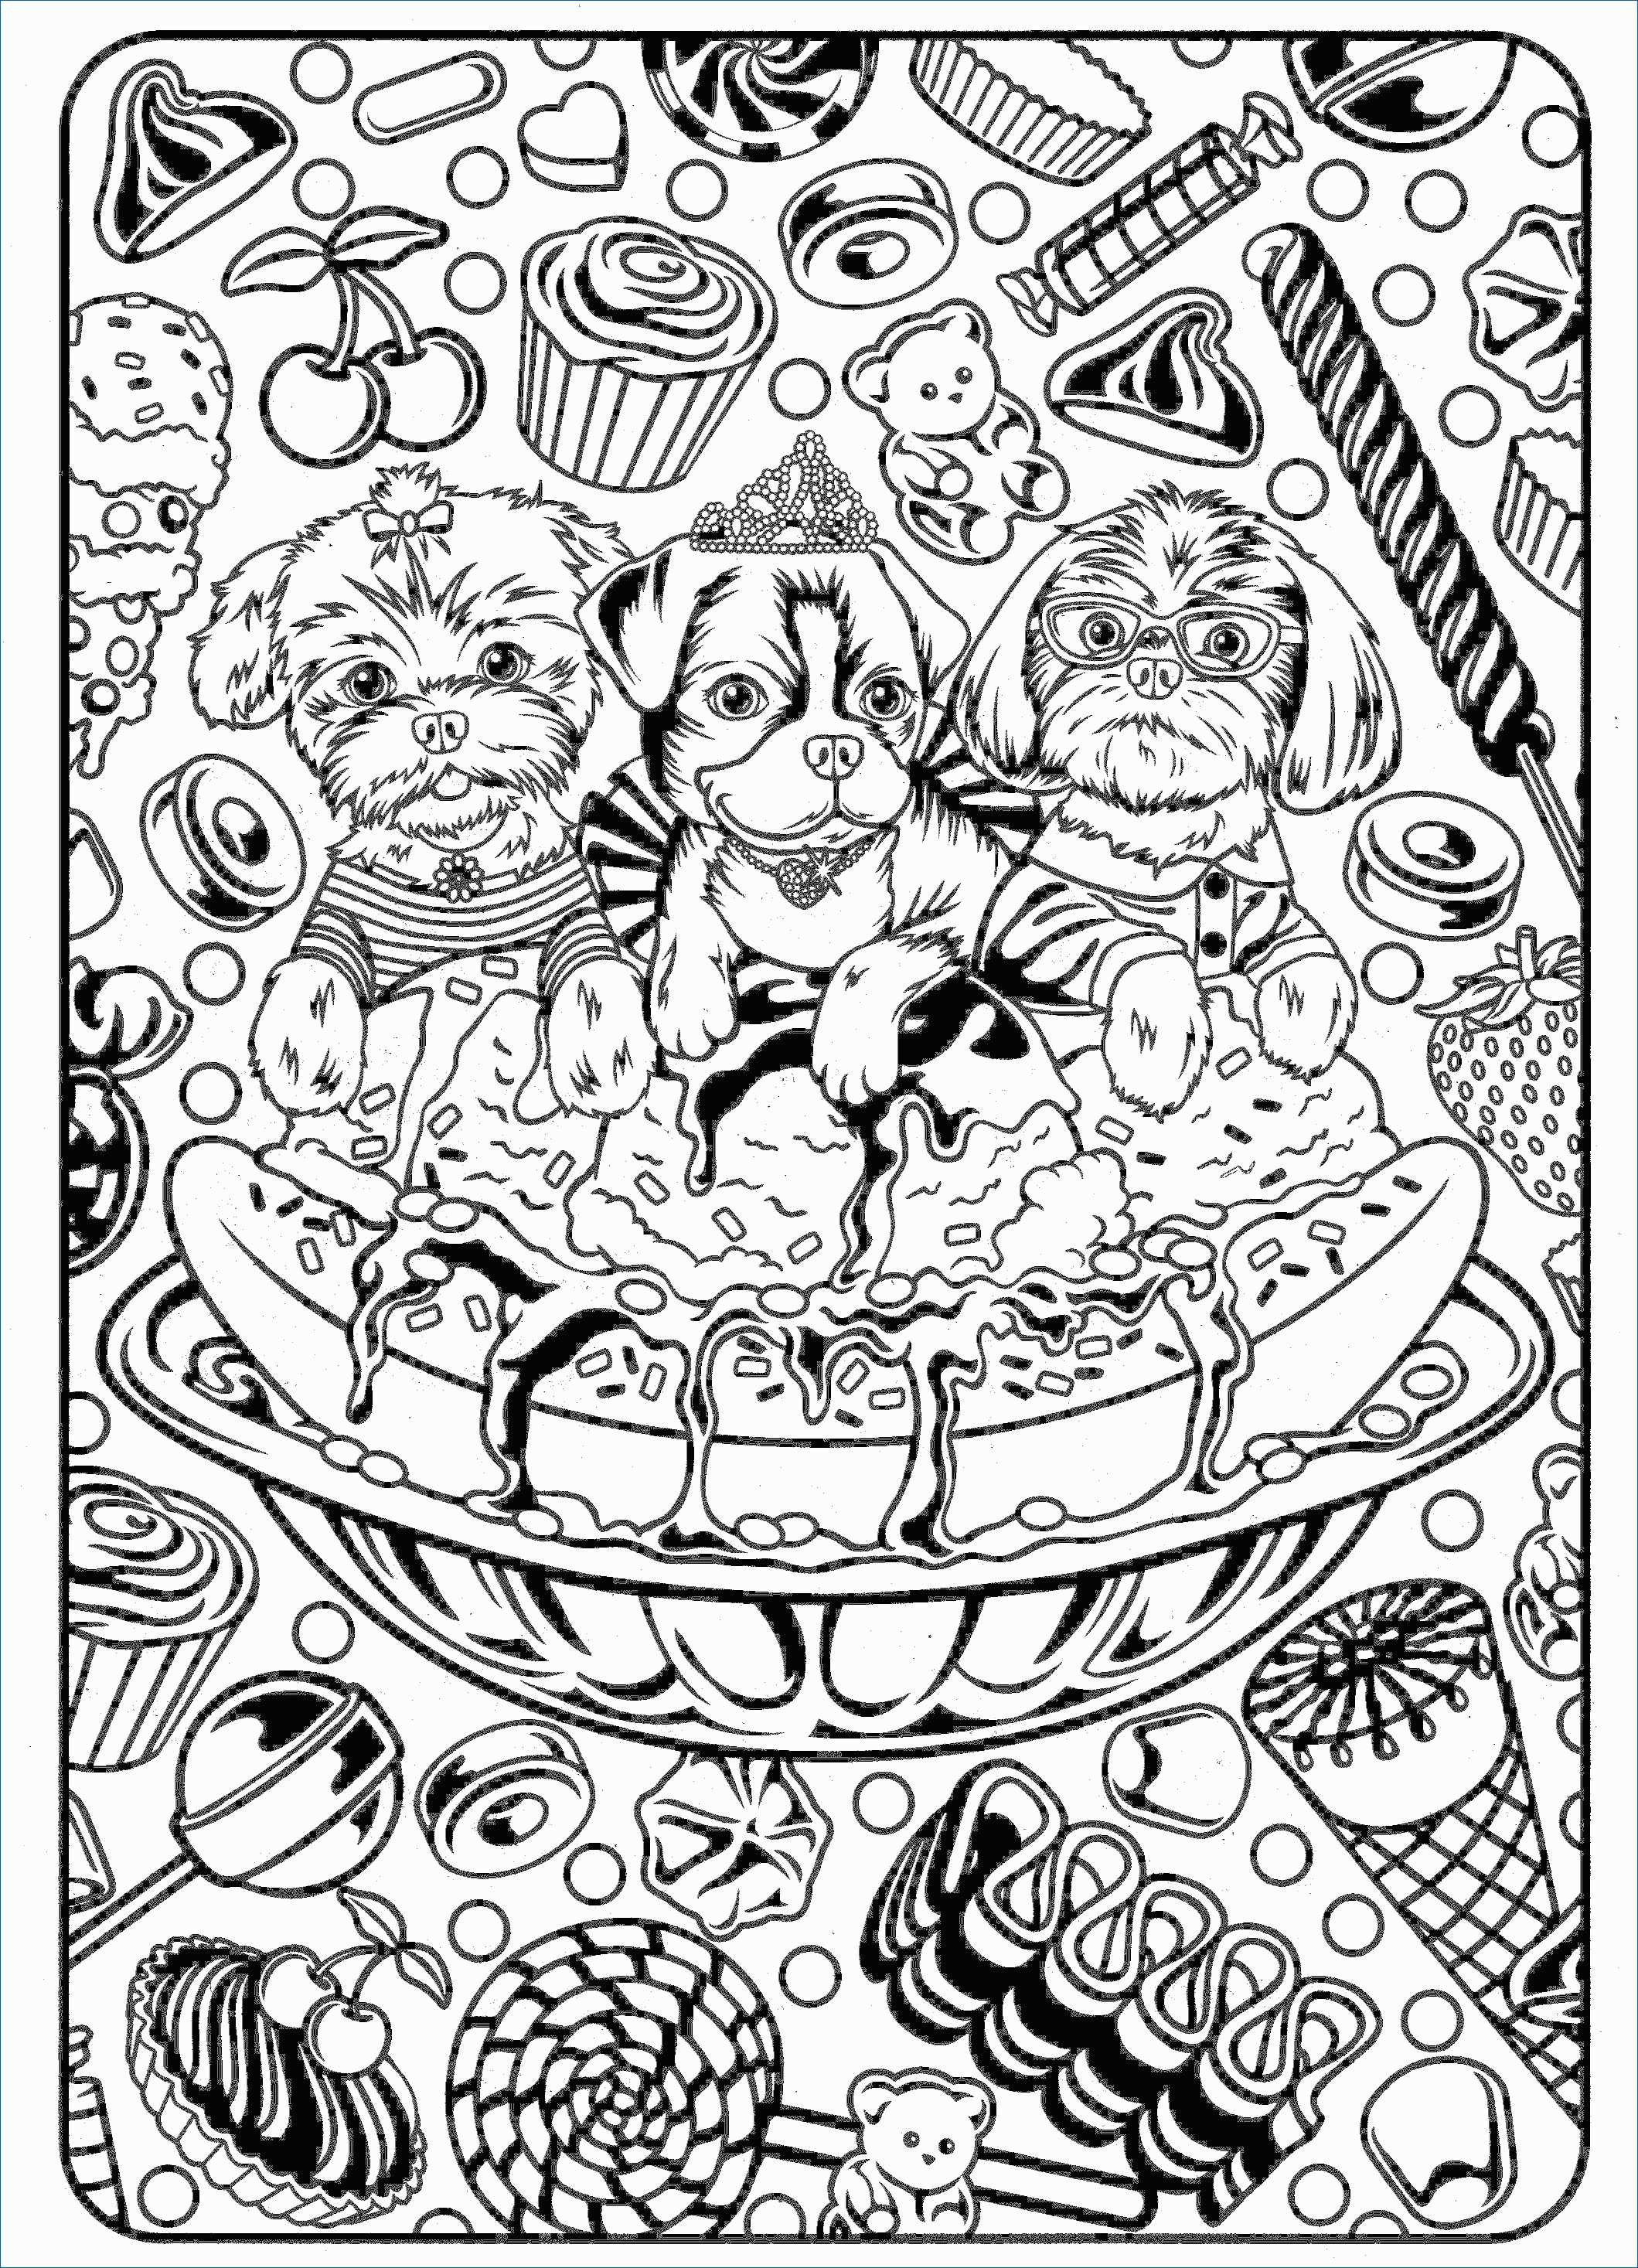 Ausmalbilder Barbie Pferd Einzigartig Barbie Colouring Book Awesome Coloring Page Genial Ausmalbilder Galerie